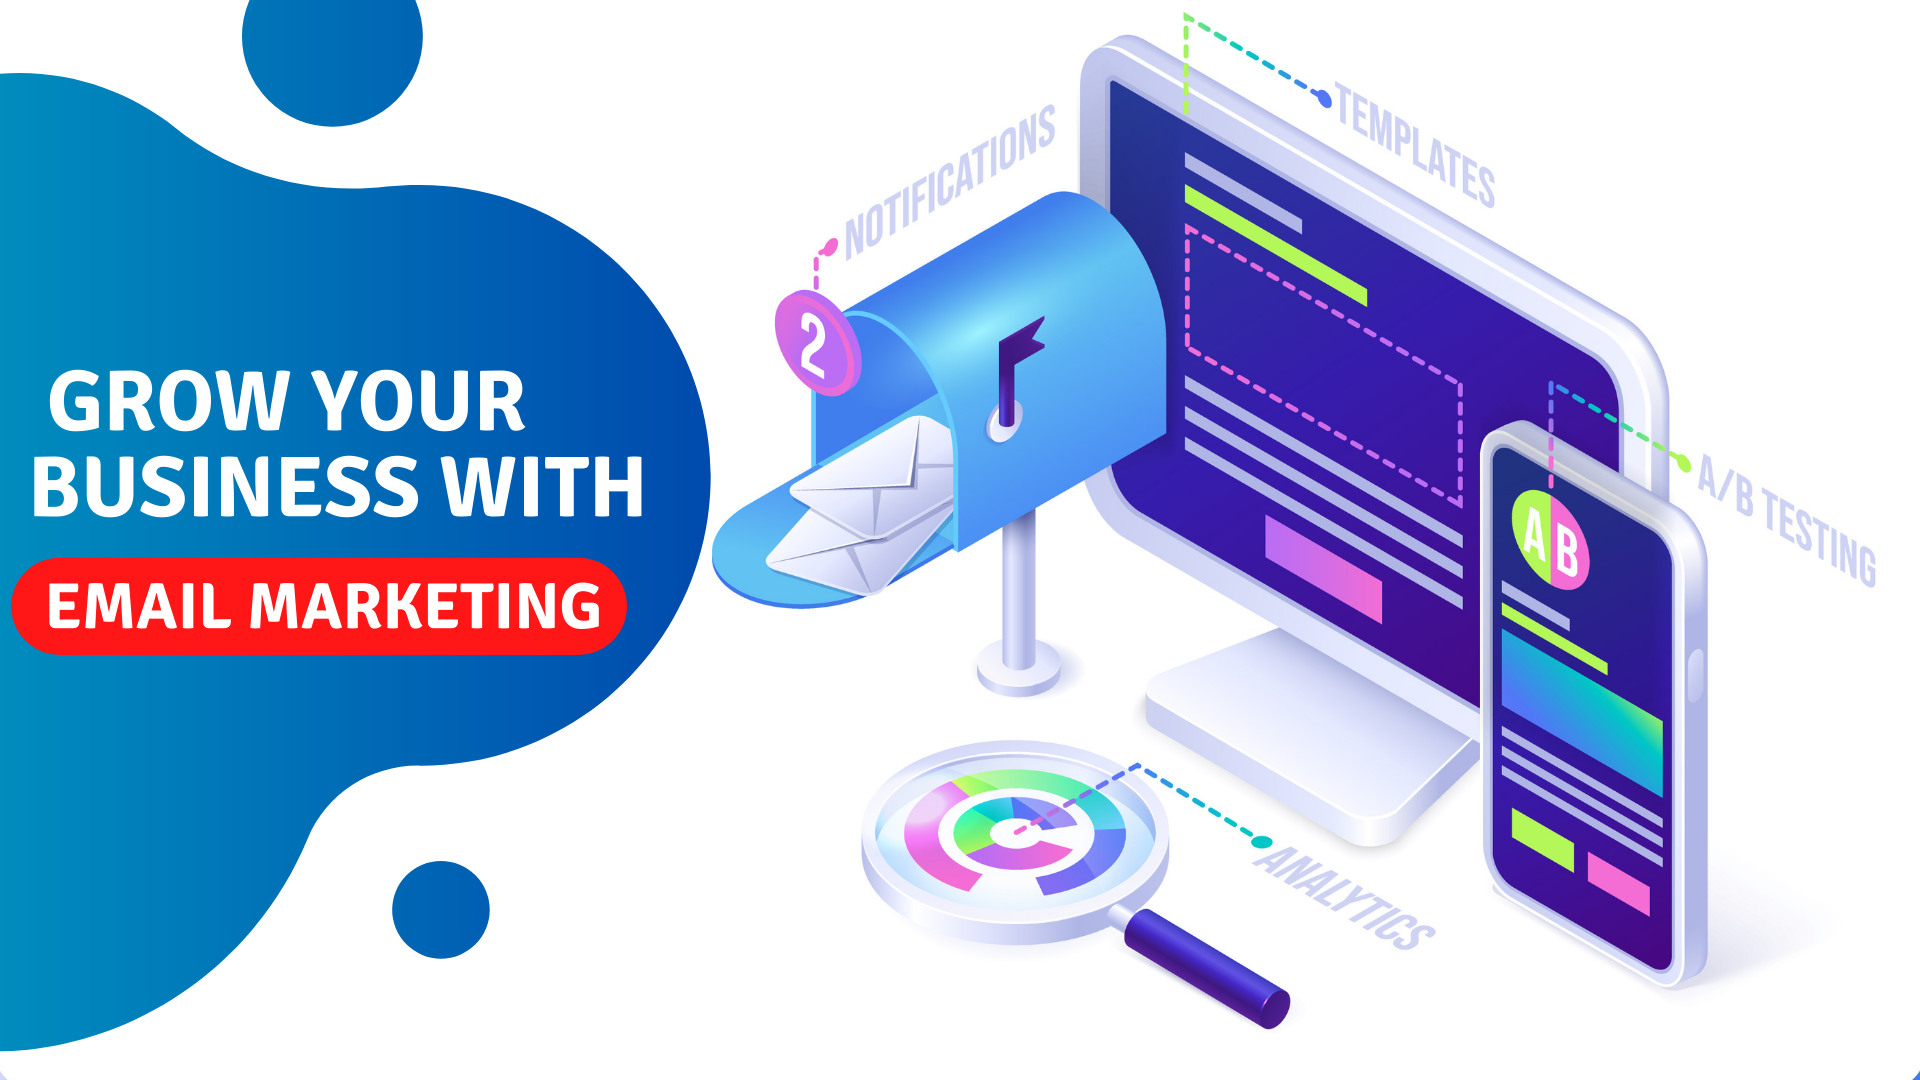 Ultimate Guide to Grow your Busihttps://www.clubinfonline.com/2021/05/15/grow-your-business-with-email-marketing/ness with Email Marketing